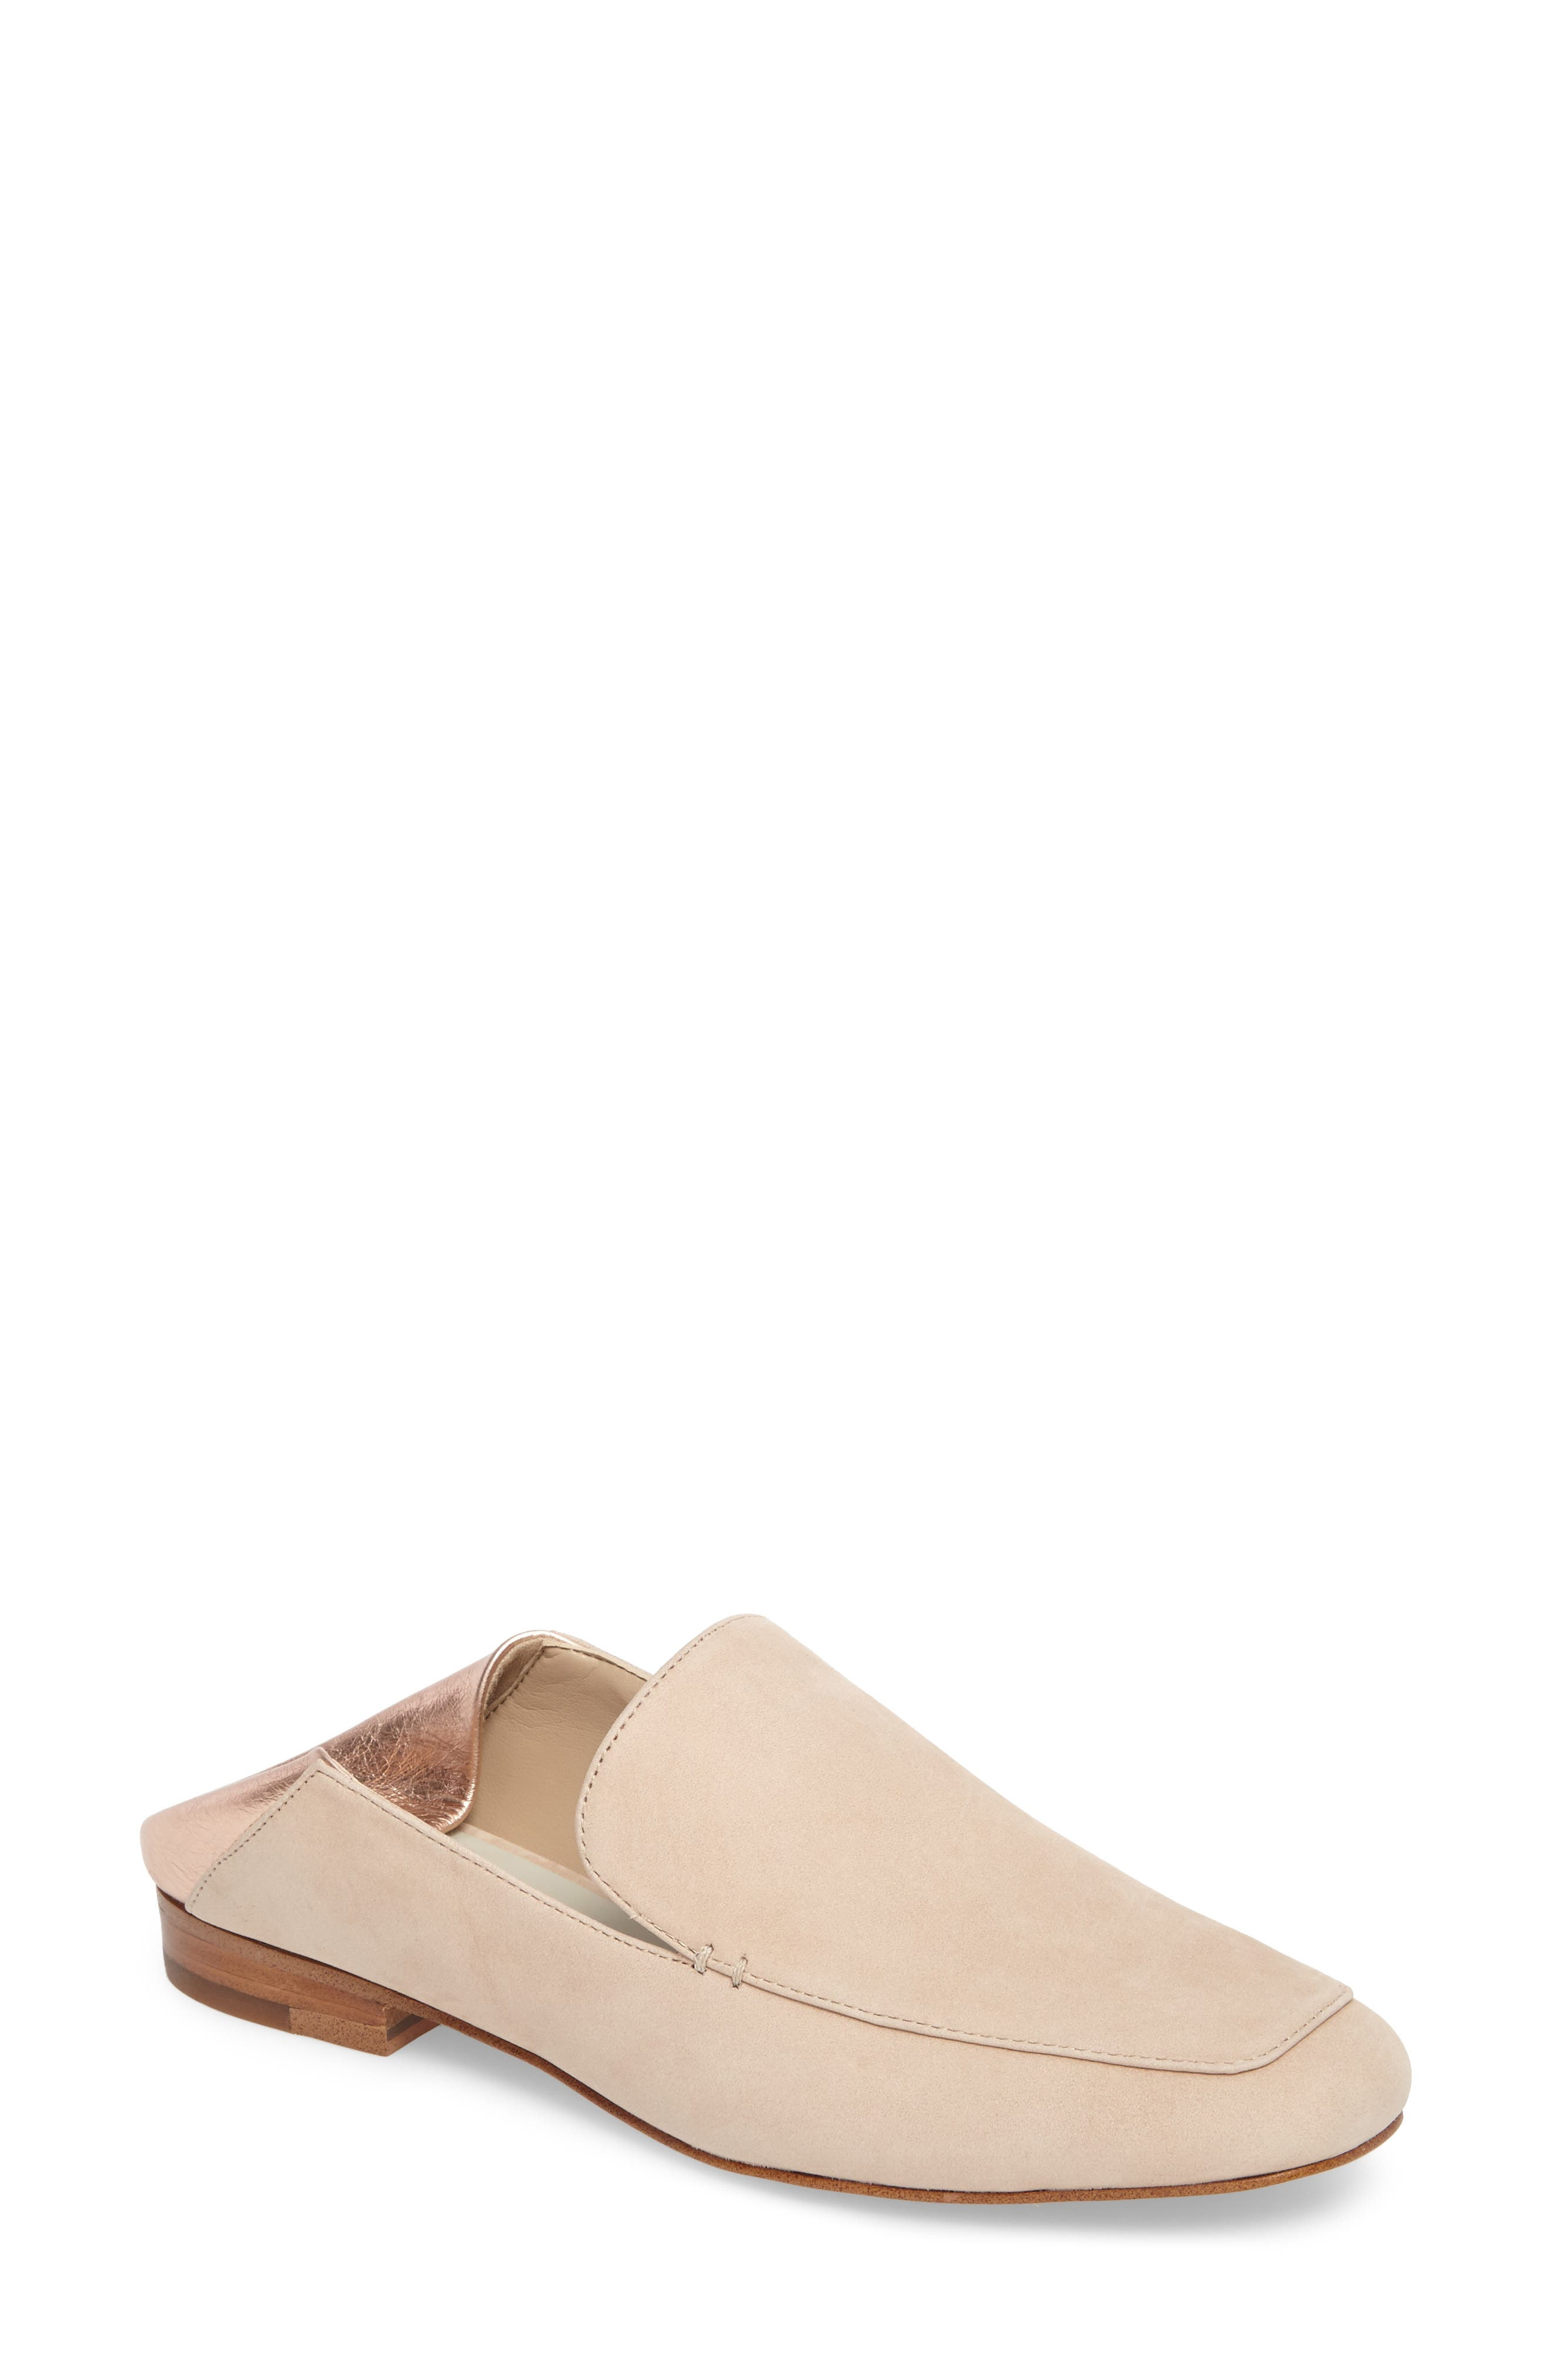 Faun Drop Heel Loafer,                             Main thumbnail 1, color,                             Cipria Leather